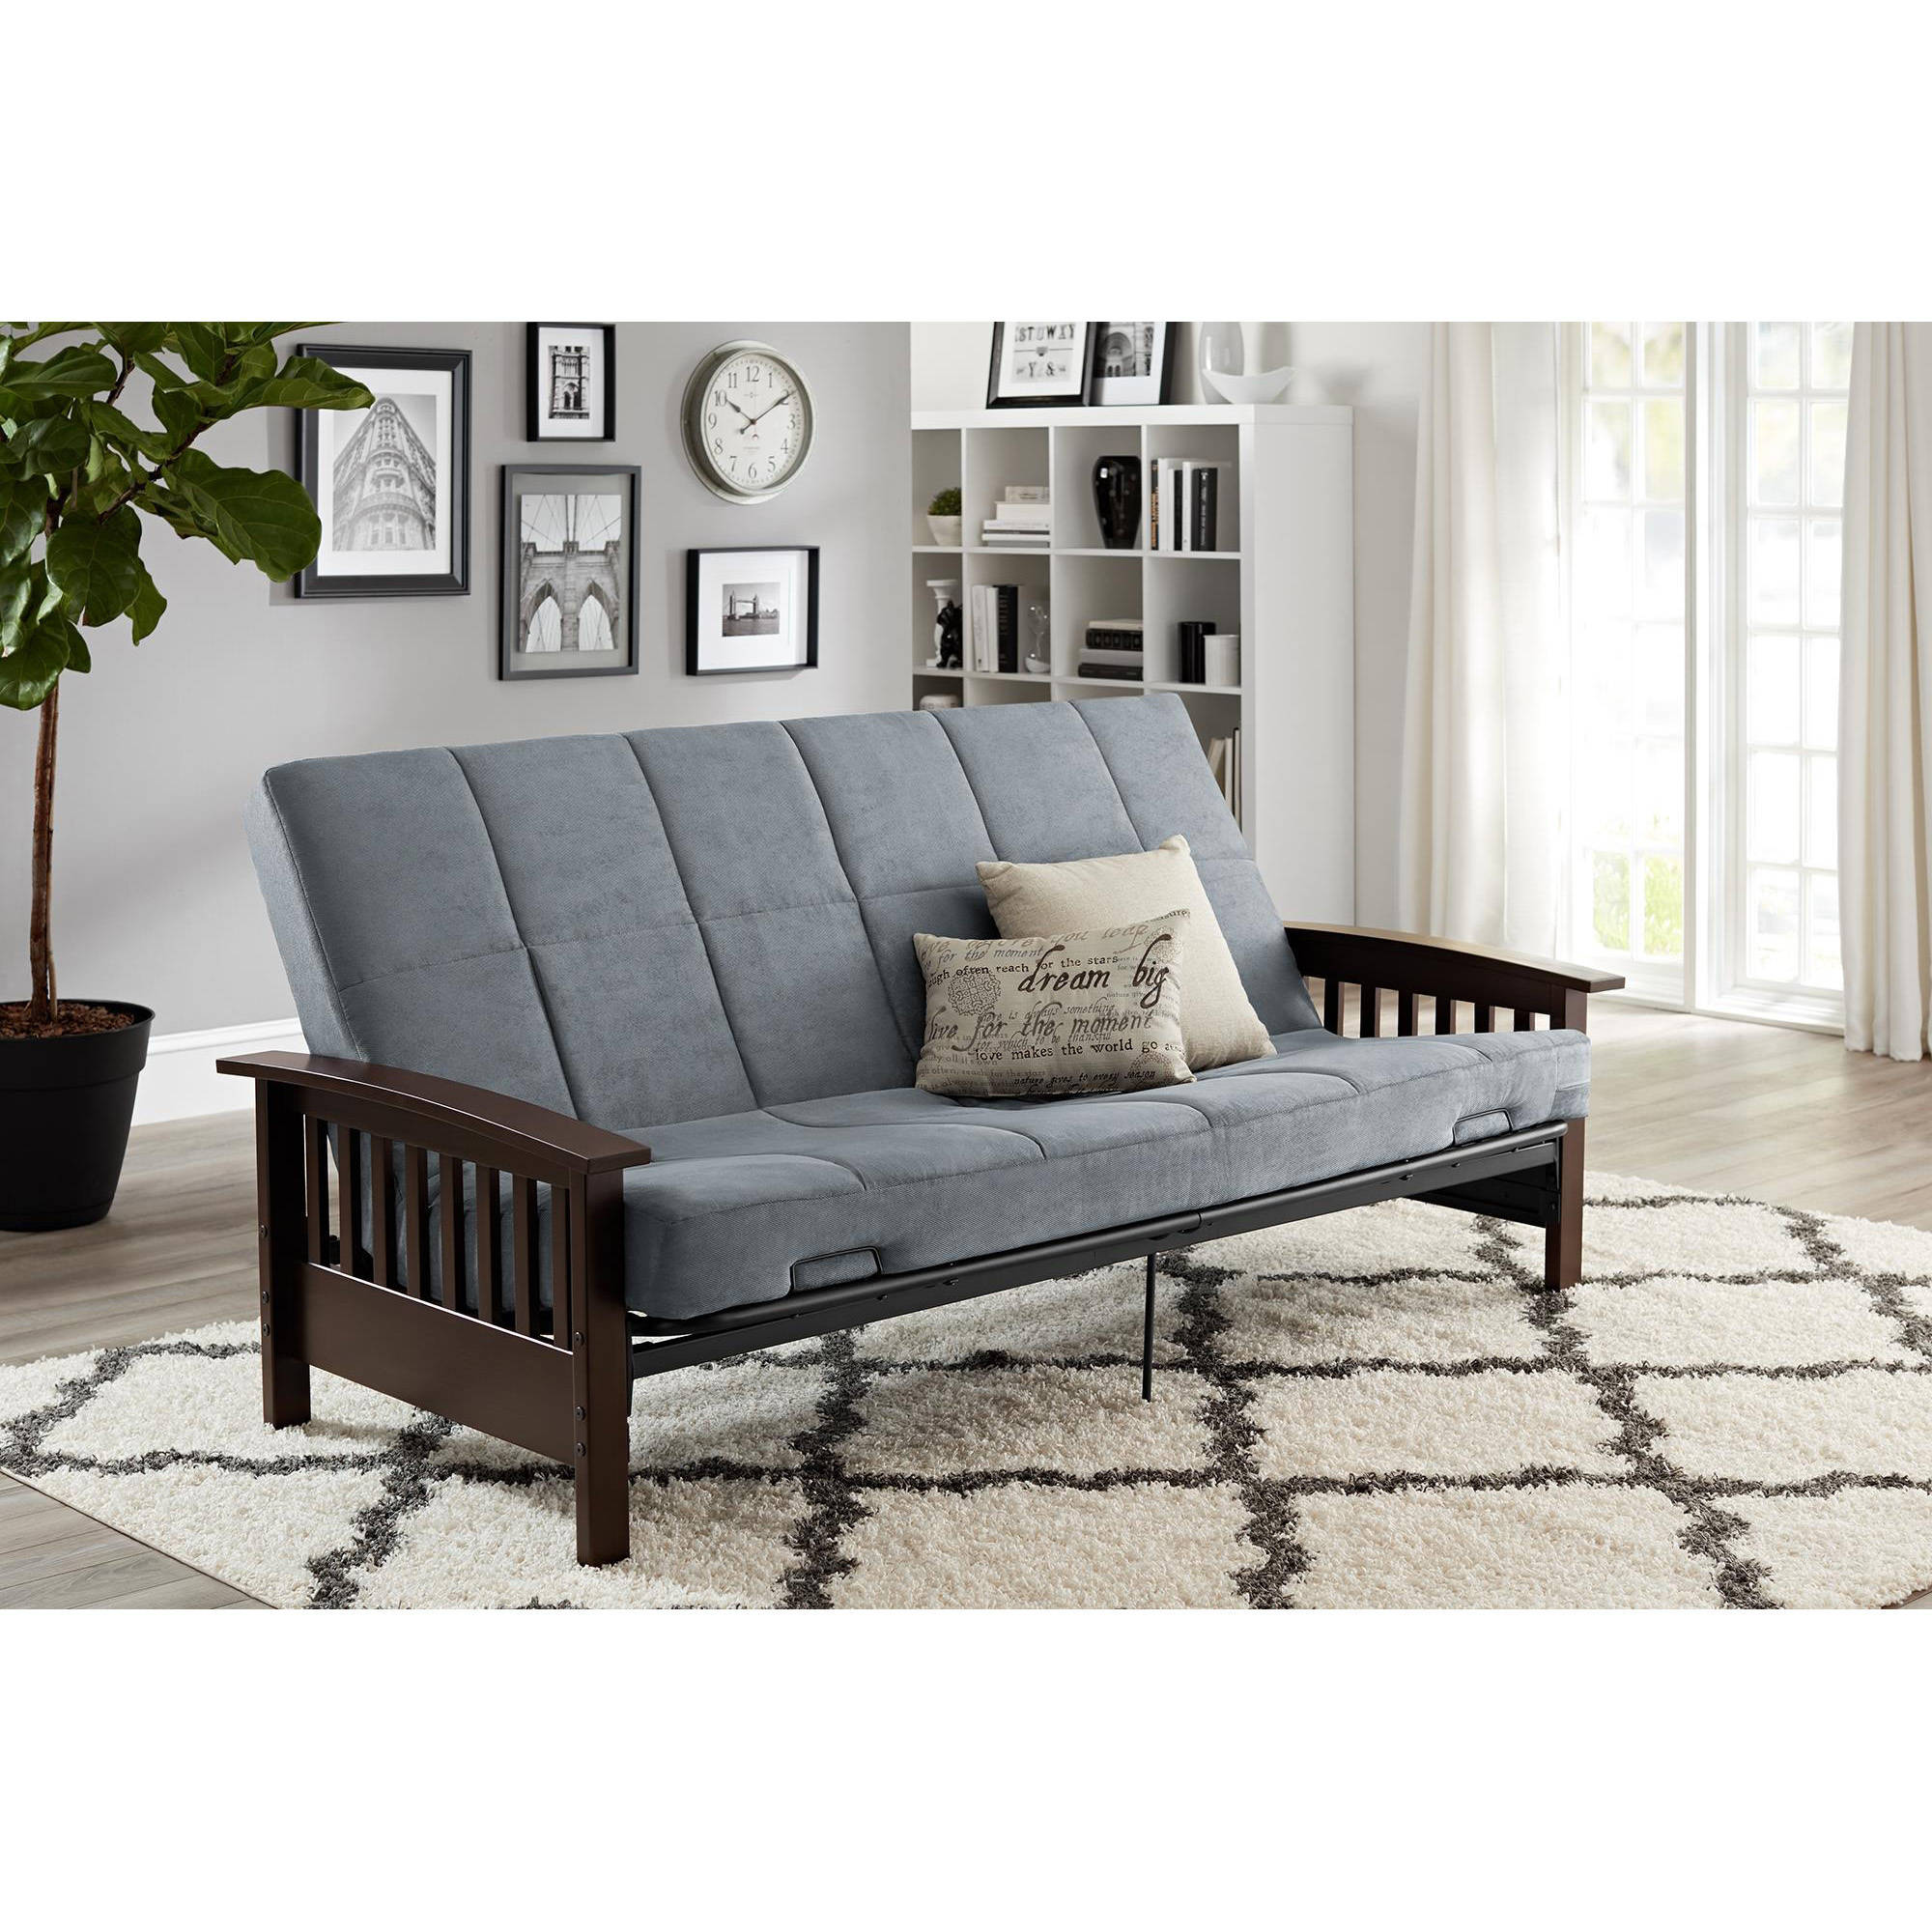 better homes and gardens neo mission wood arm futon espresso with tan mattress